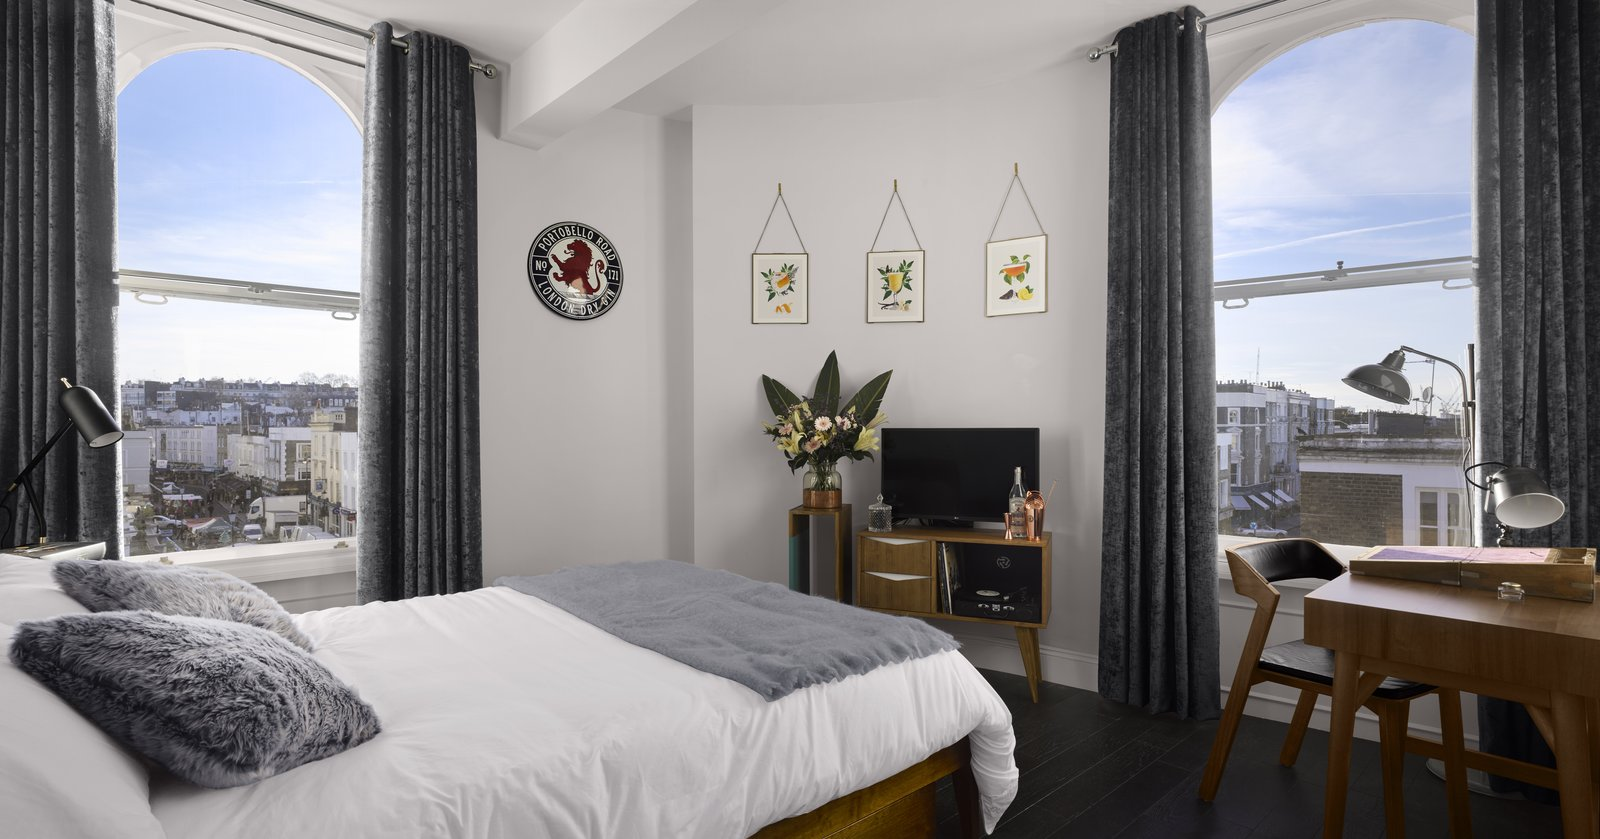 The three boutique guest rooms feature a combination of midcentury furniture and playful, spirit-inspired accents. Designed by each of the brand's founding directors, each room includes a minibar filled with spirits that were crafted on-site and a bespoke record player with a vinyl playlist that's been curated by Rough Trade Records.